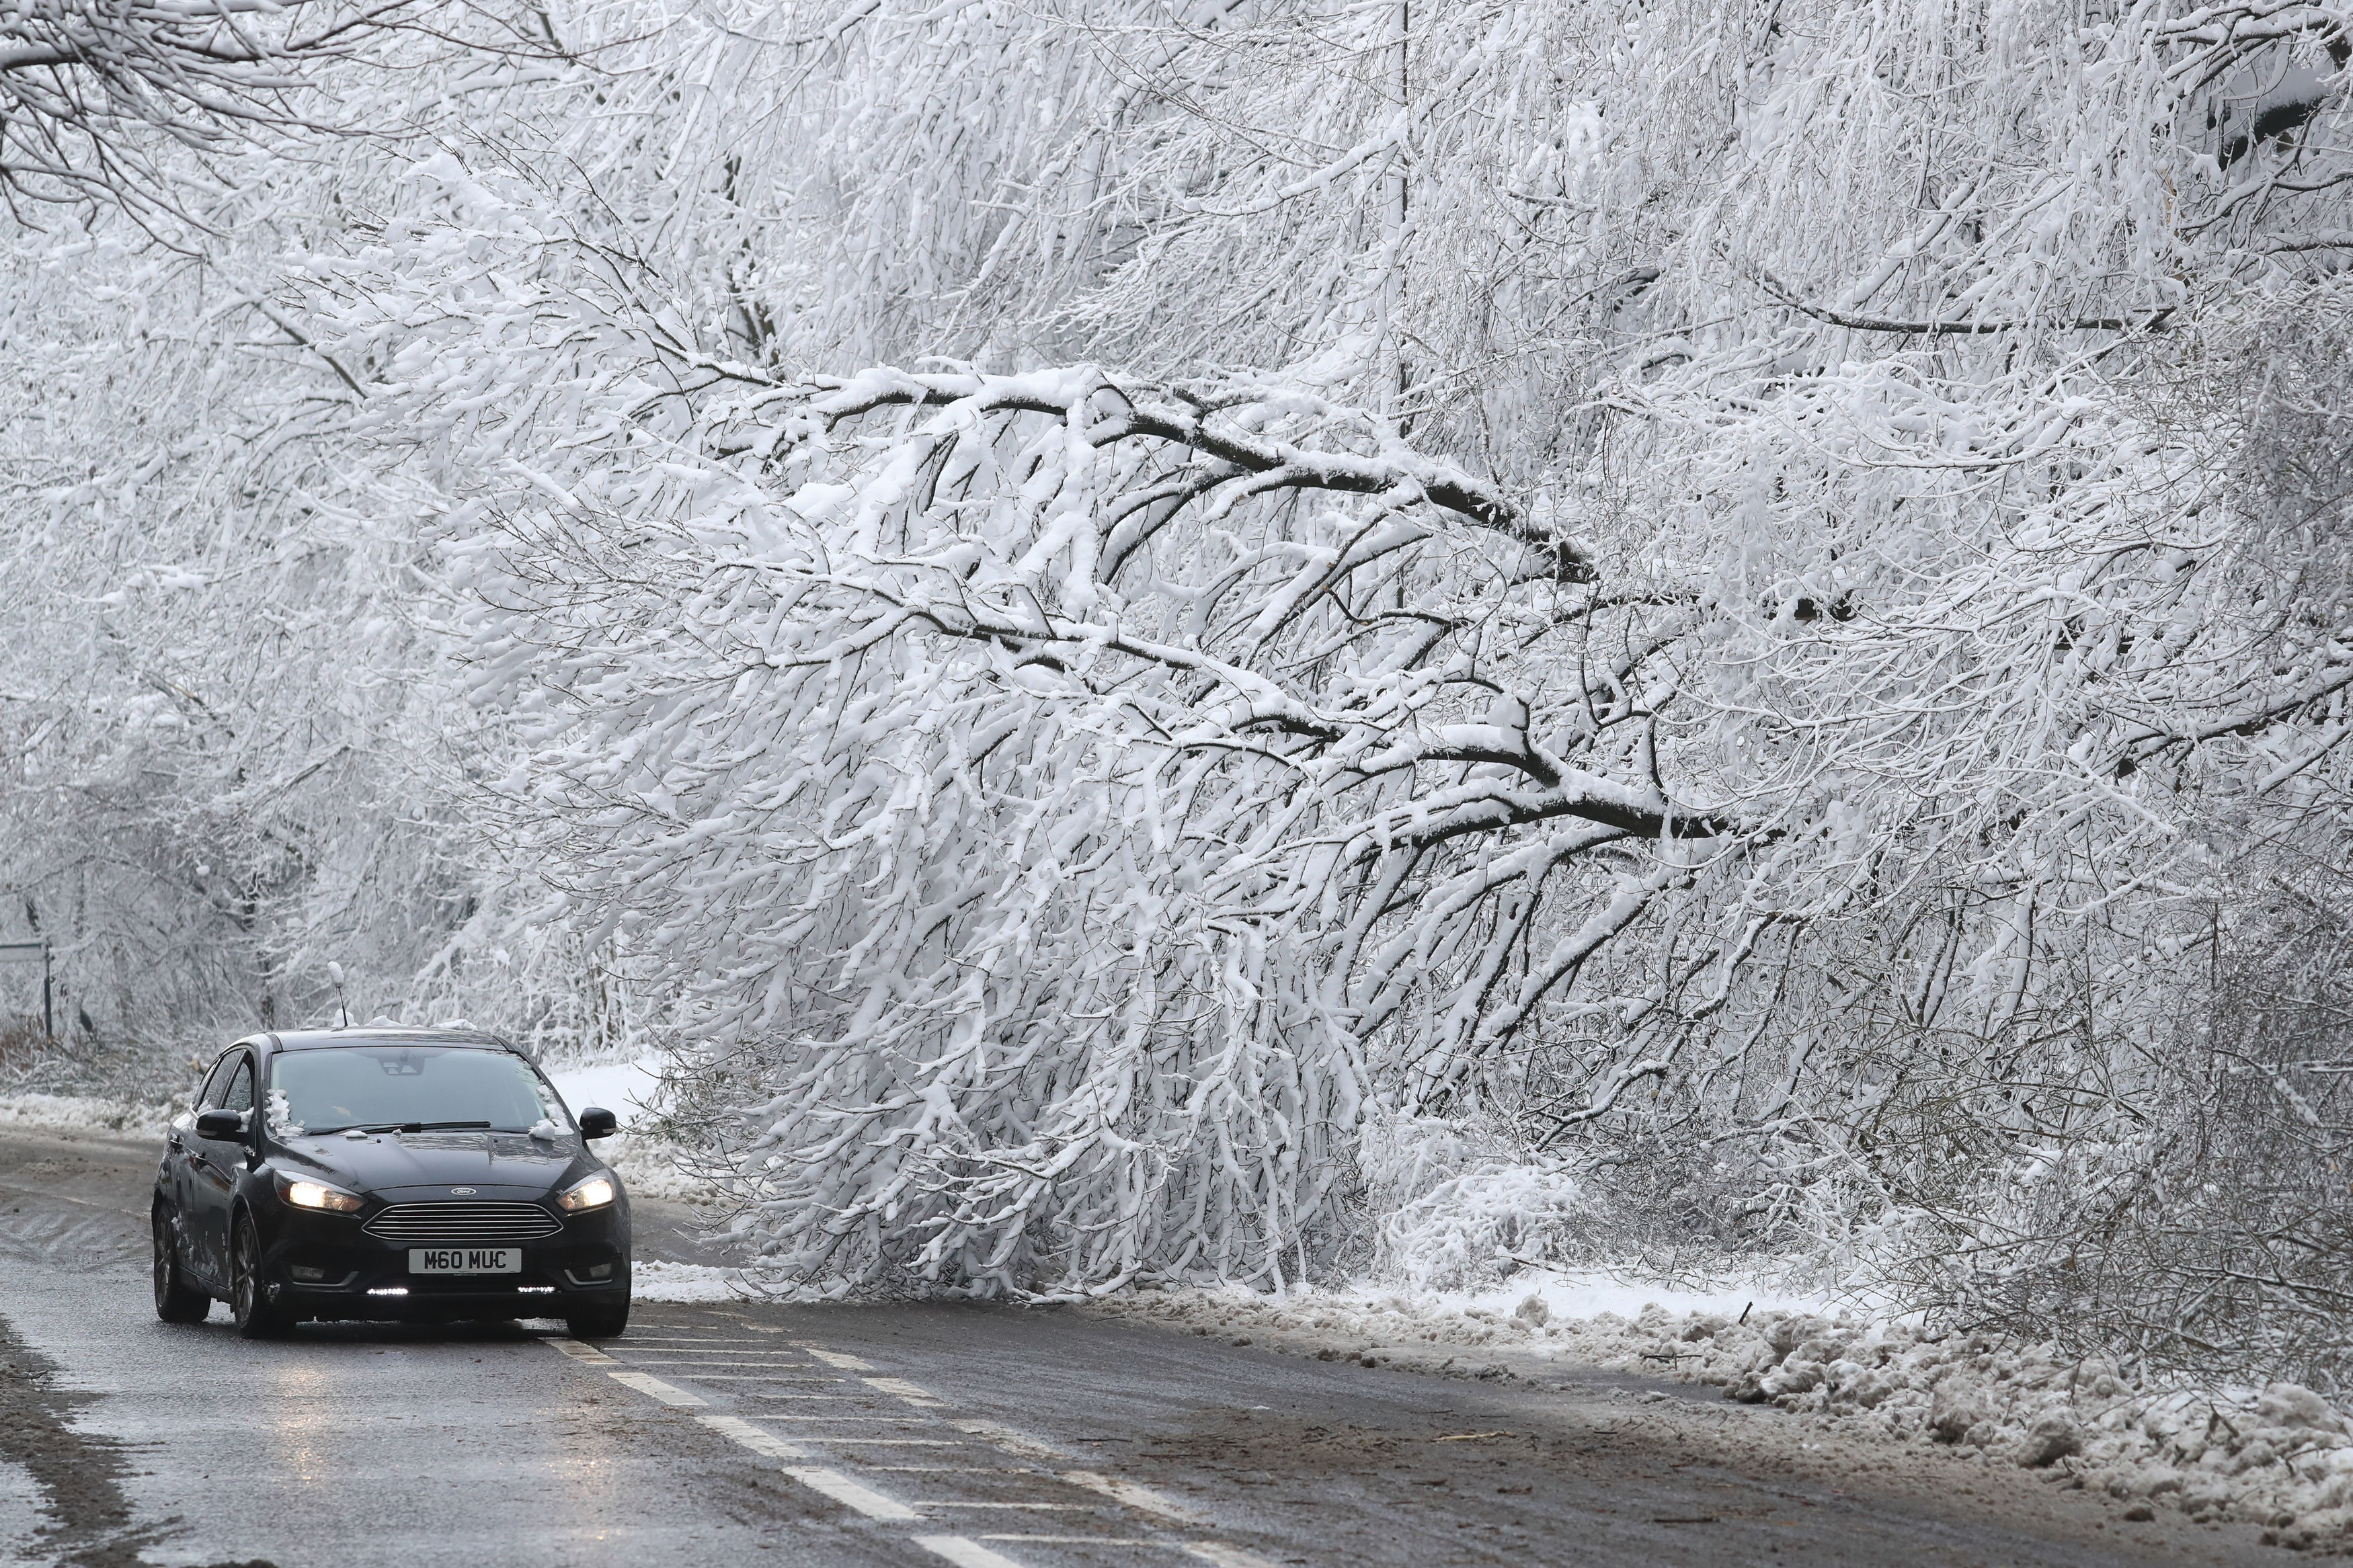 Car drives past snow-covered tree